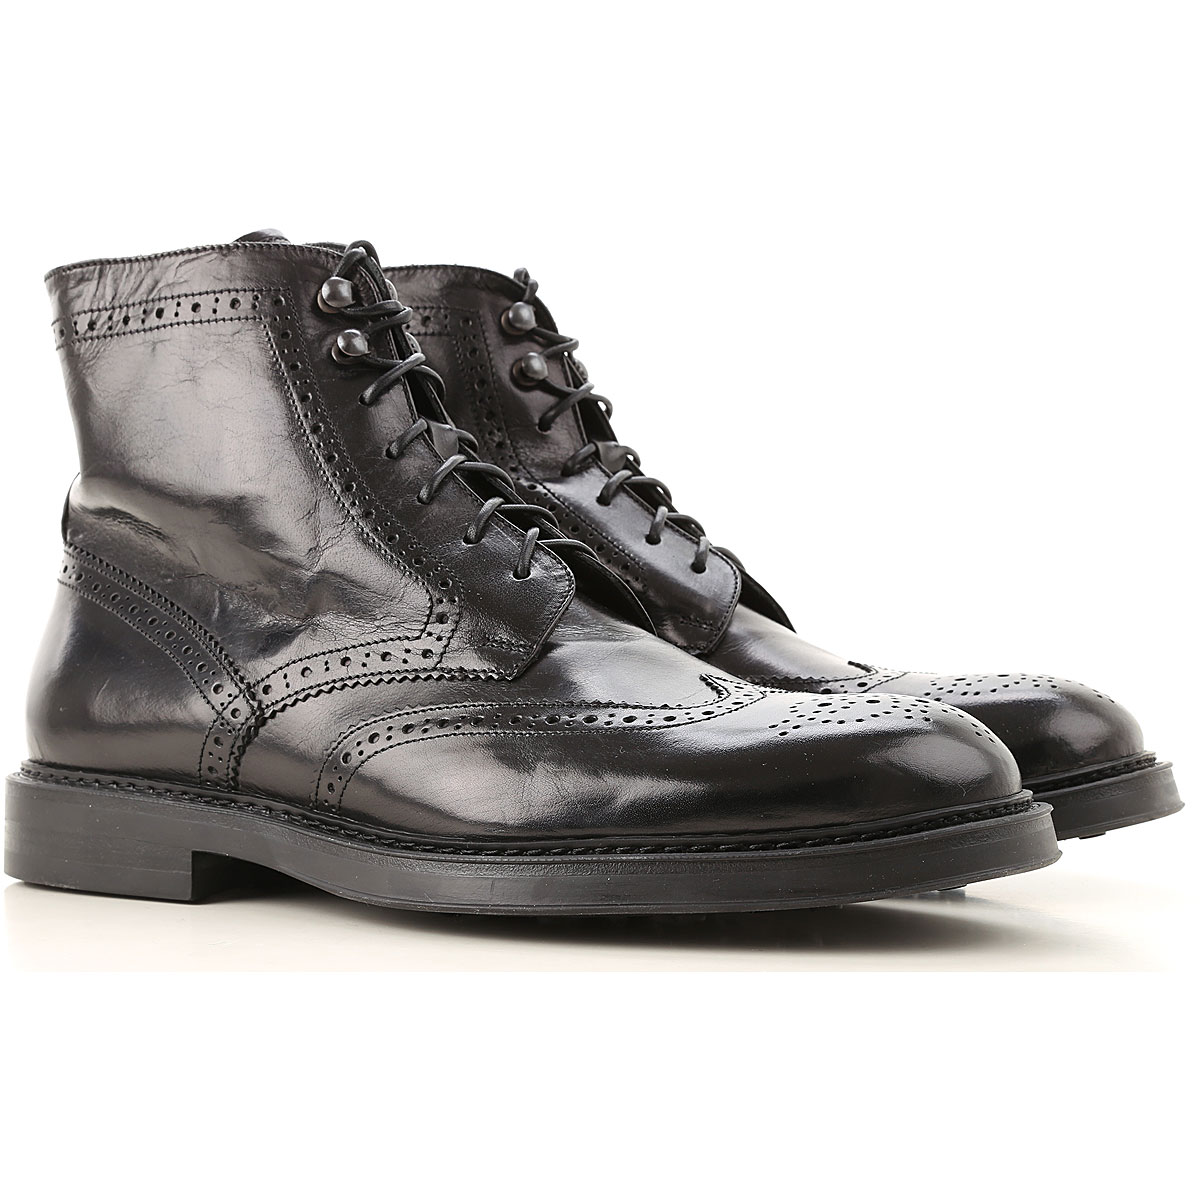 Doucals Boots for Men, Booties, Black, Leather, 2019, 10 10.5 8 9